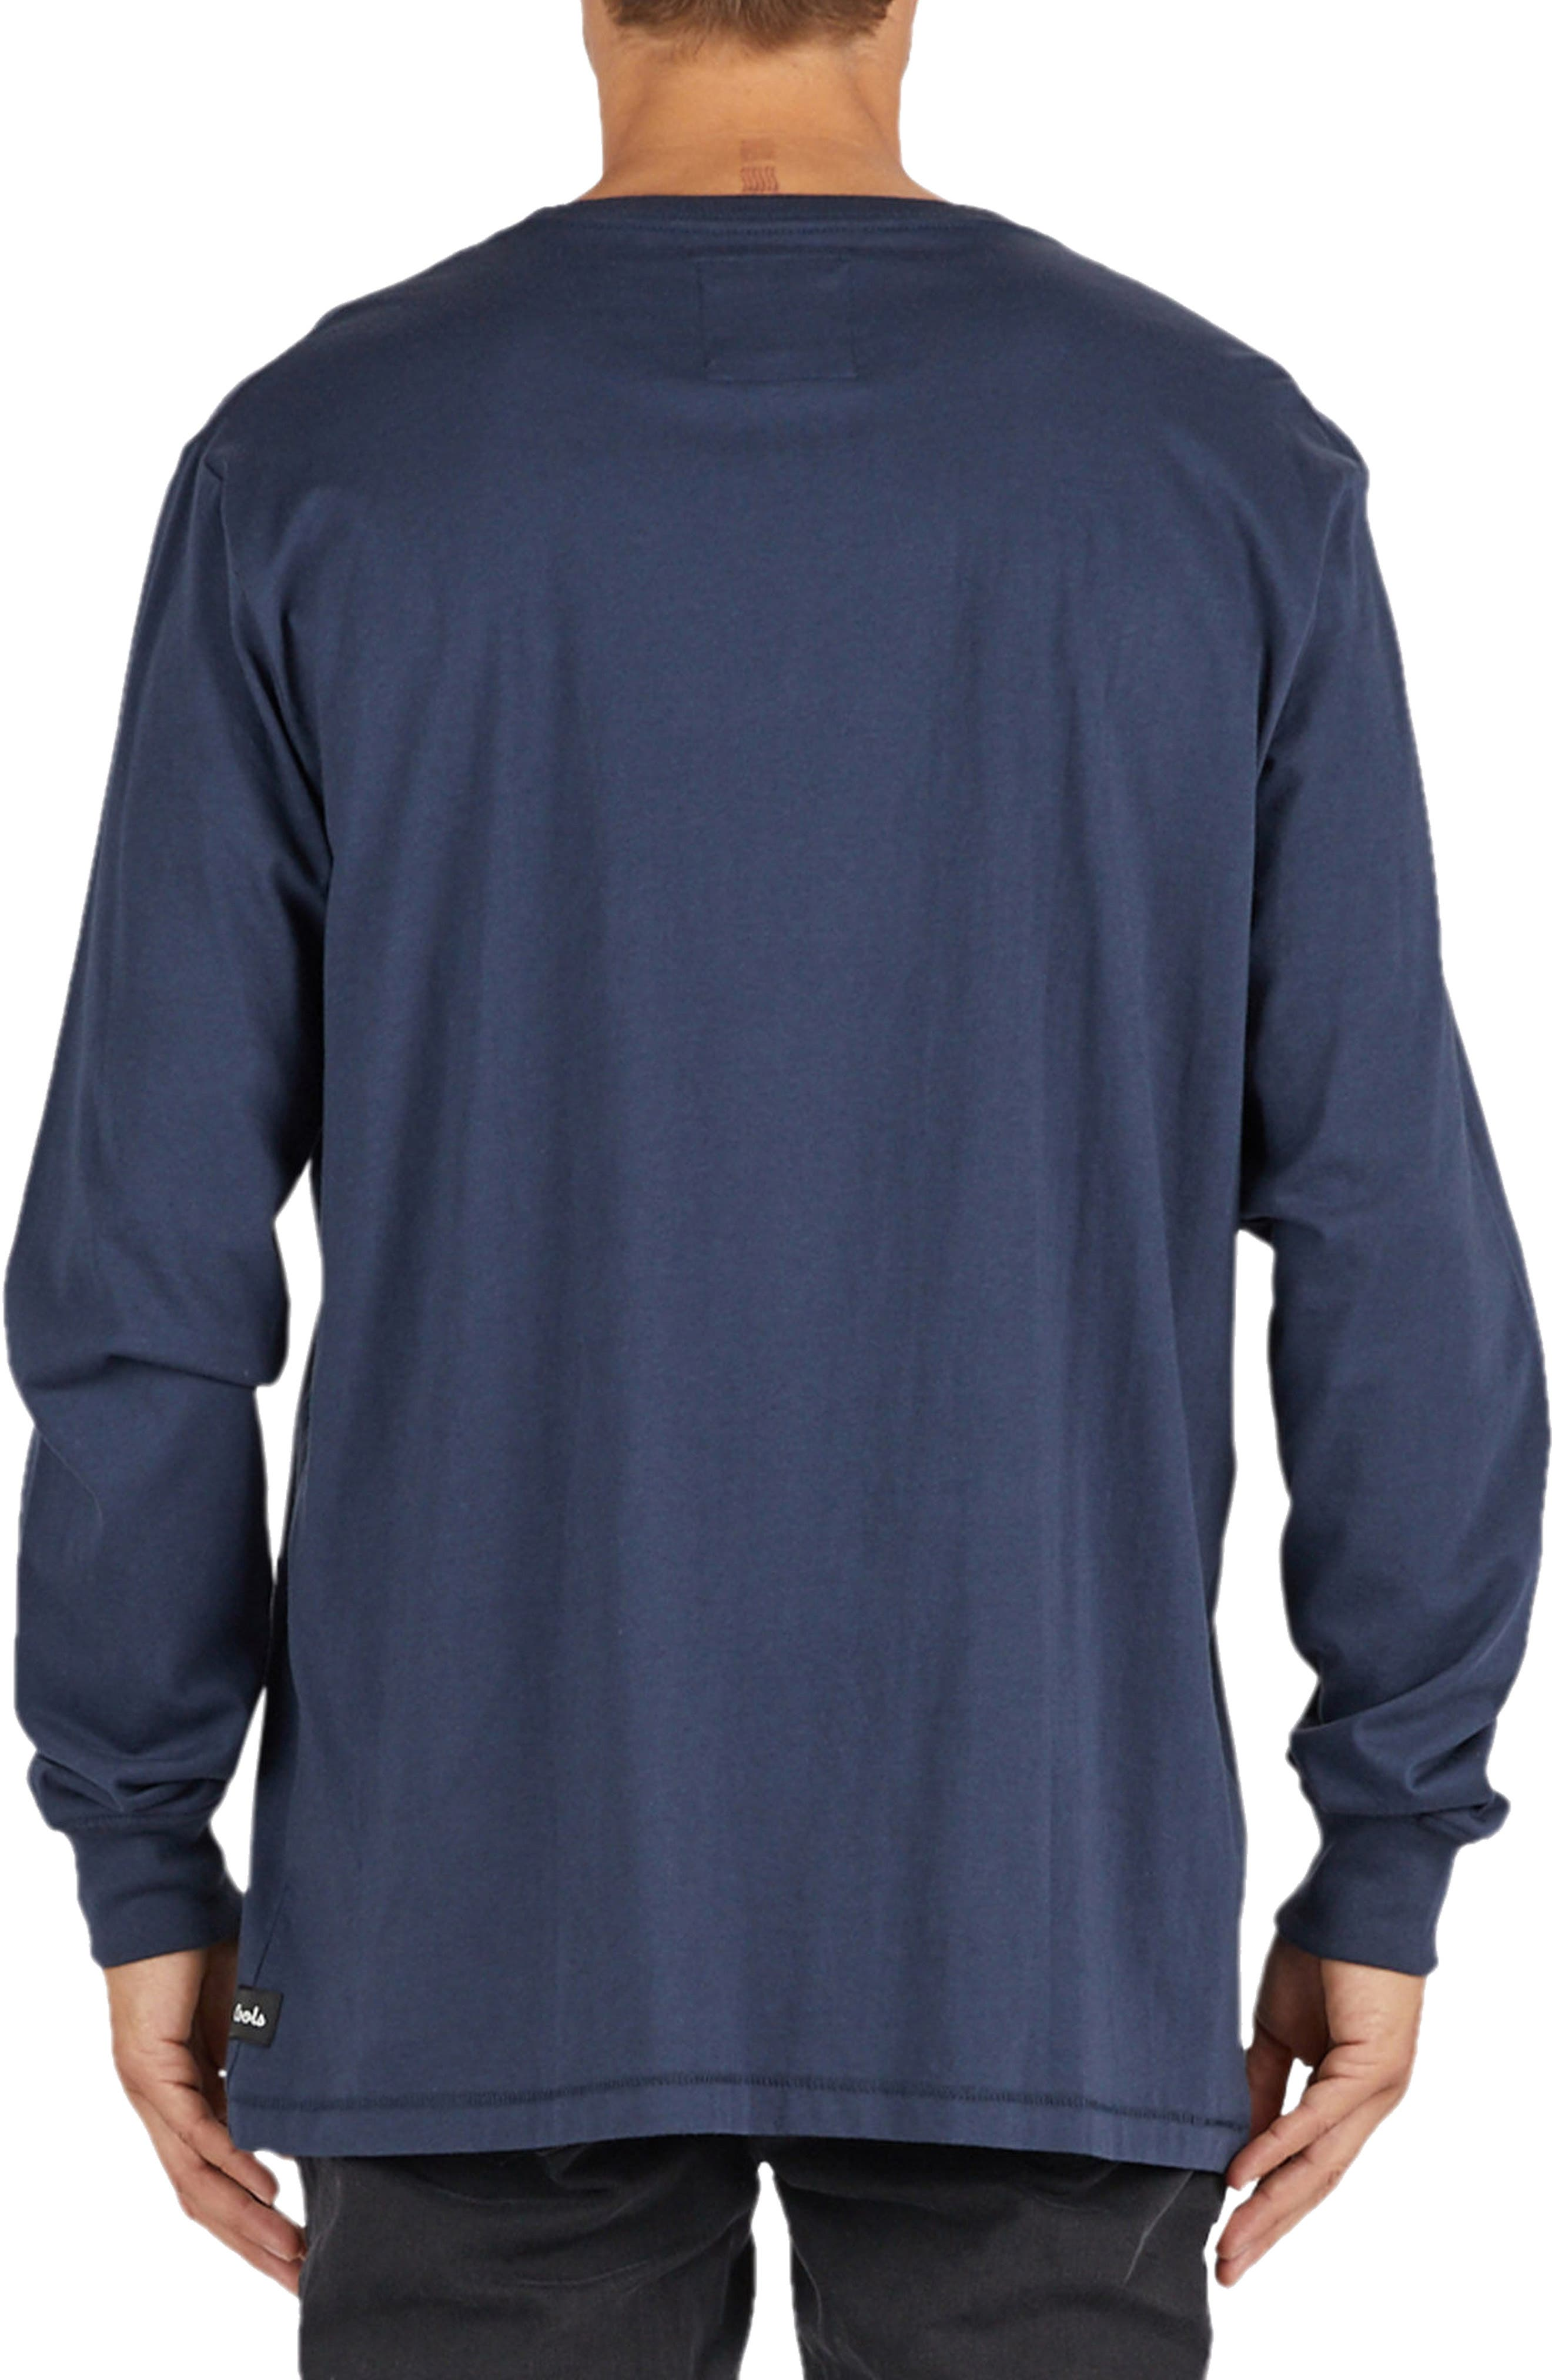 Alternate Image 2  - Barney Cools Relax Embroidered Long Sleeve T-Shirt